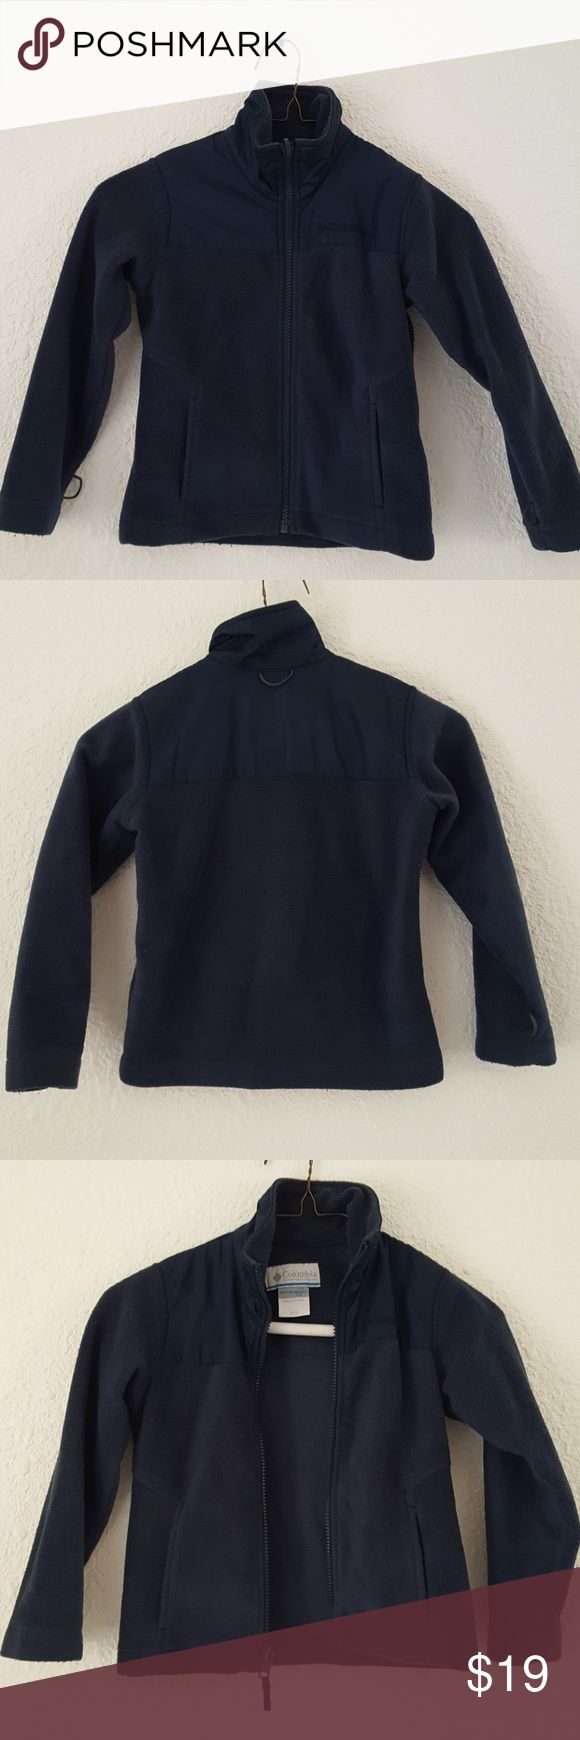 "Columbia Navy Fleece Jacket Kids XXS 4-5 4T 5T Great lightweight fleece ans nylon jacket from Columbia in a kids size XXS 4-5. Works for a boy or girl. This can be used with Columbia interchange jackets as a liner or worn alone. Has loops at wrists and back of neck if you use with top jacket. Name written inside jacket. Chest 30"", length 16"", sleeves 16"". Columbia Jackets & Coats"